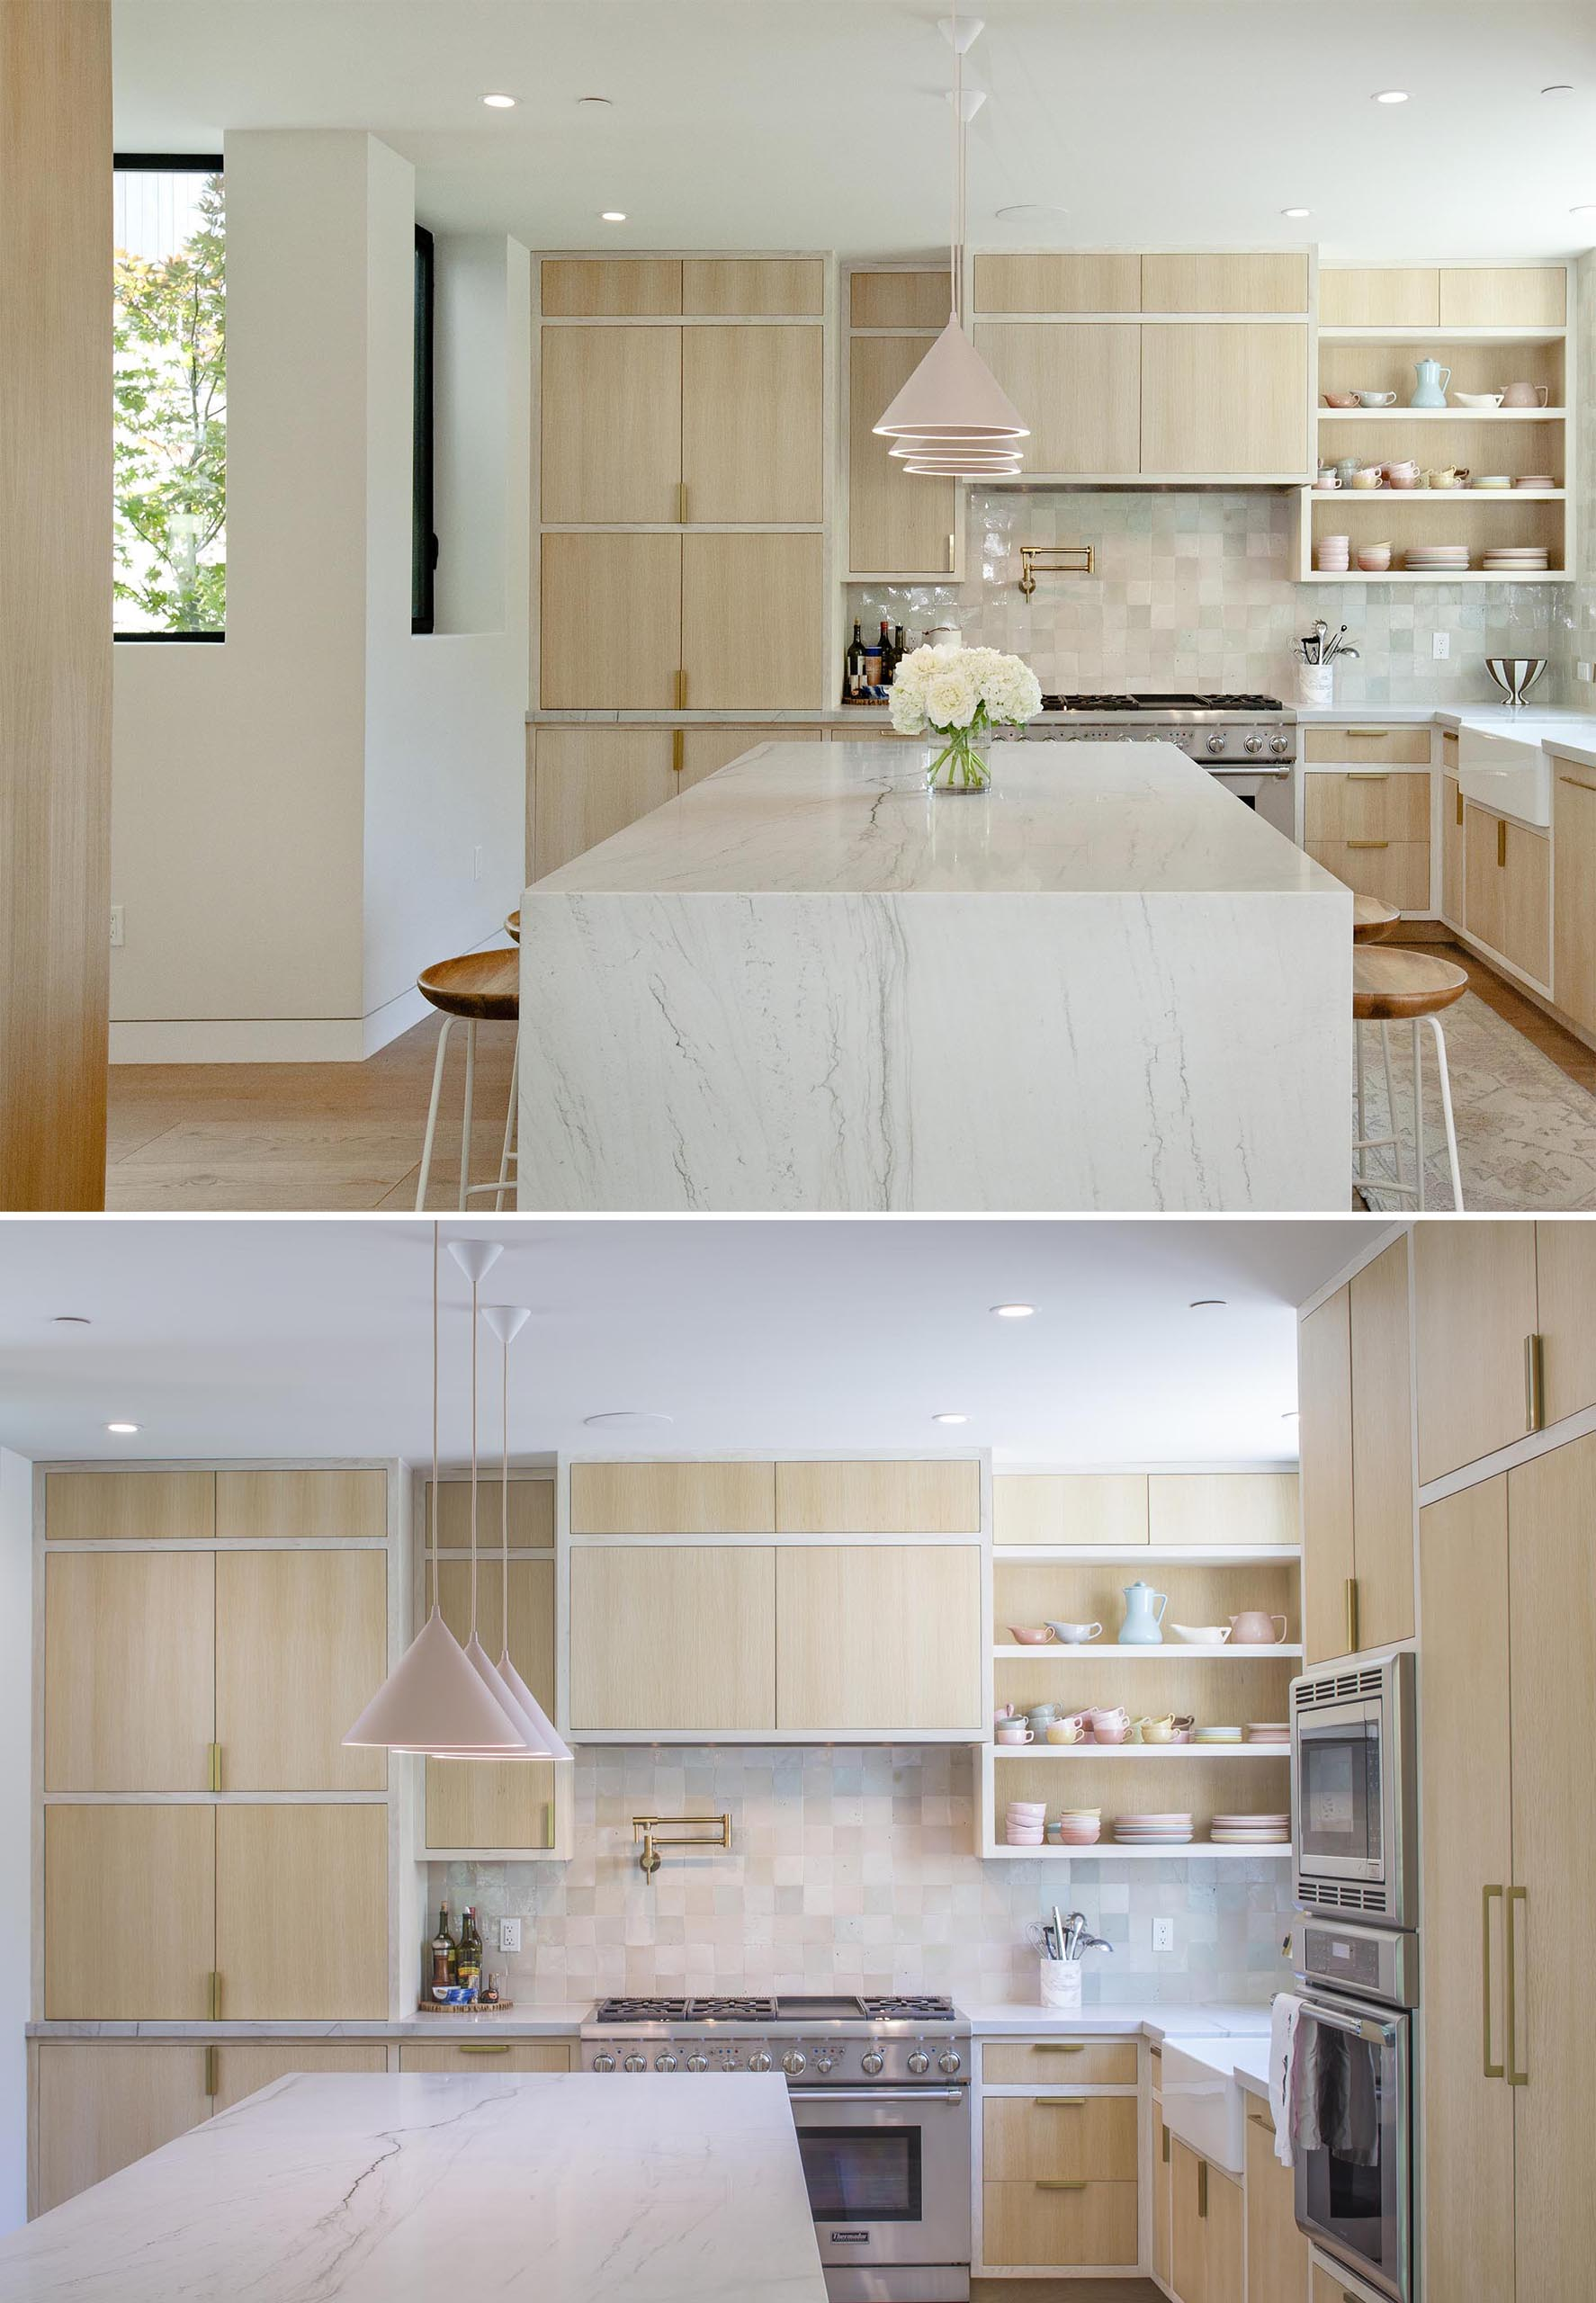 In this modern kitchen, light wood cabinets sit flush within their frames, while an island has a waterfall countertop, and the pastel pink pendant lights complement the displayed dishware and the backsplash.